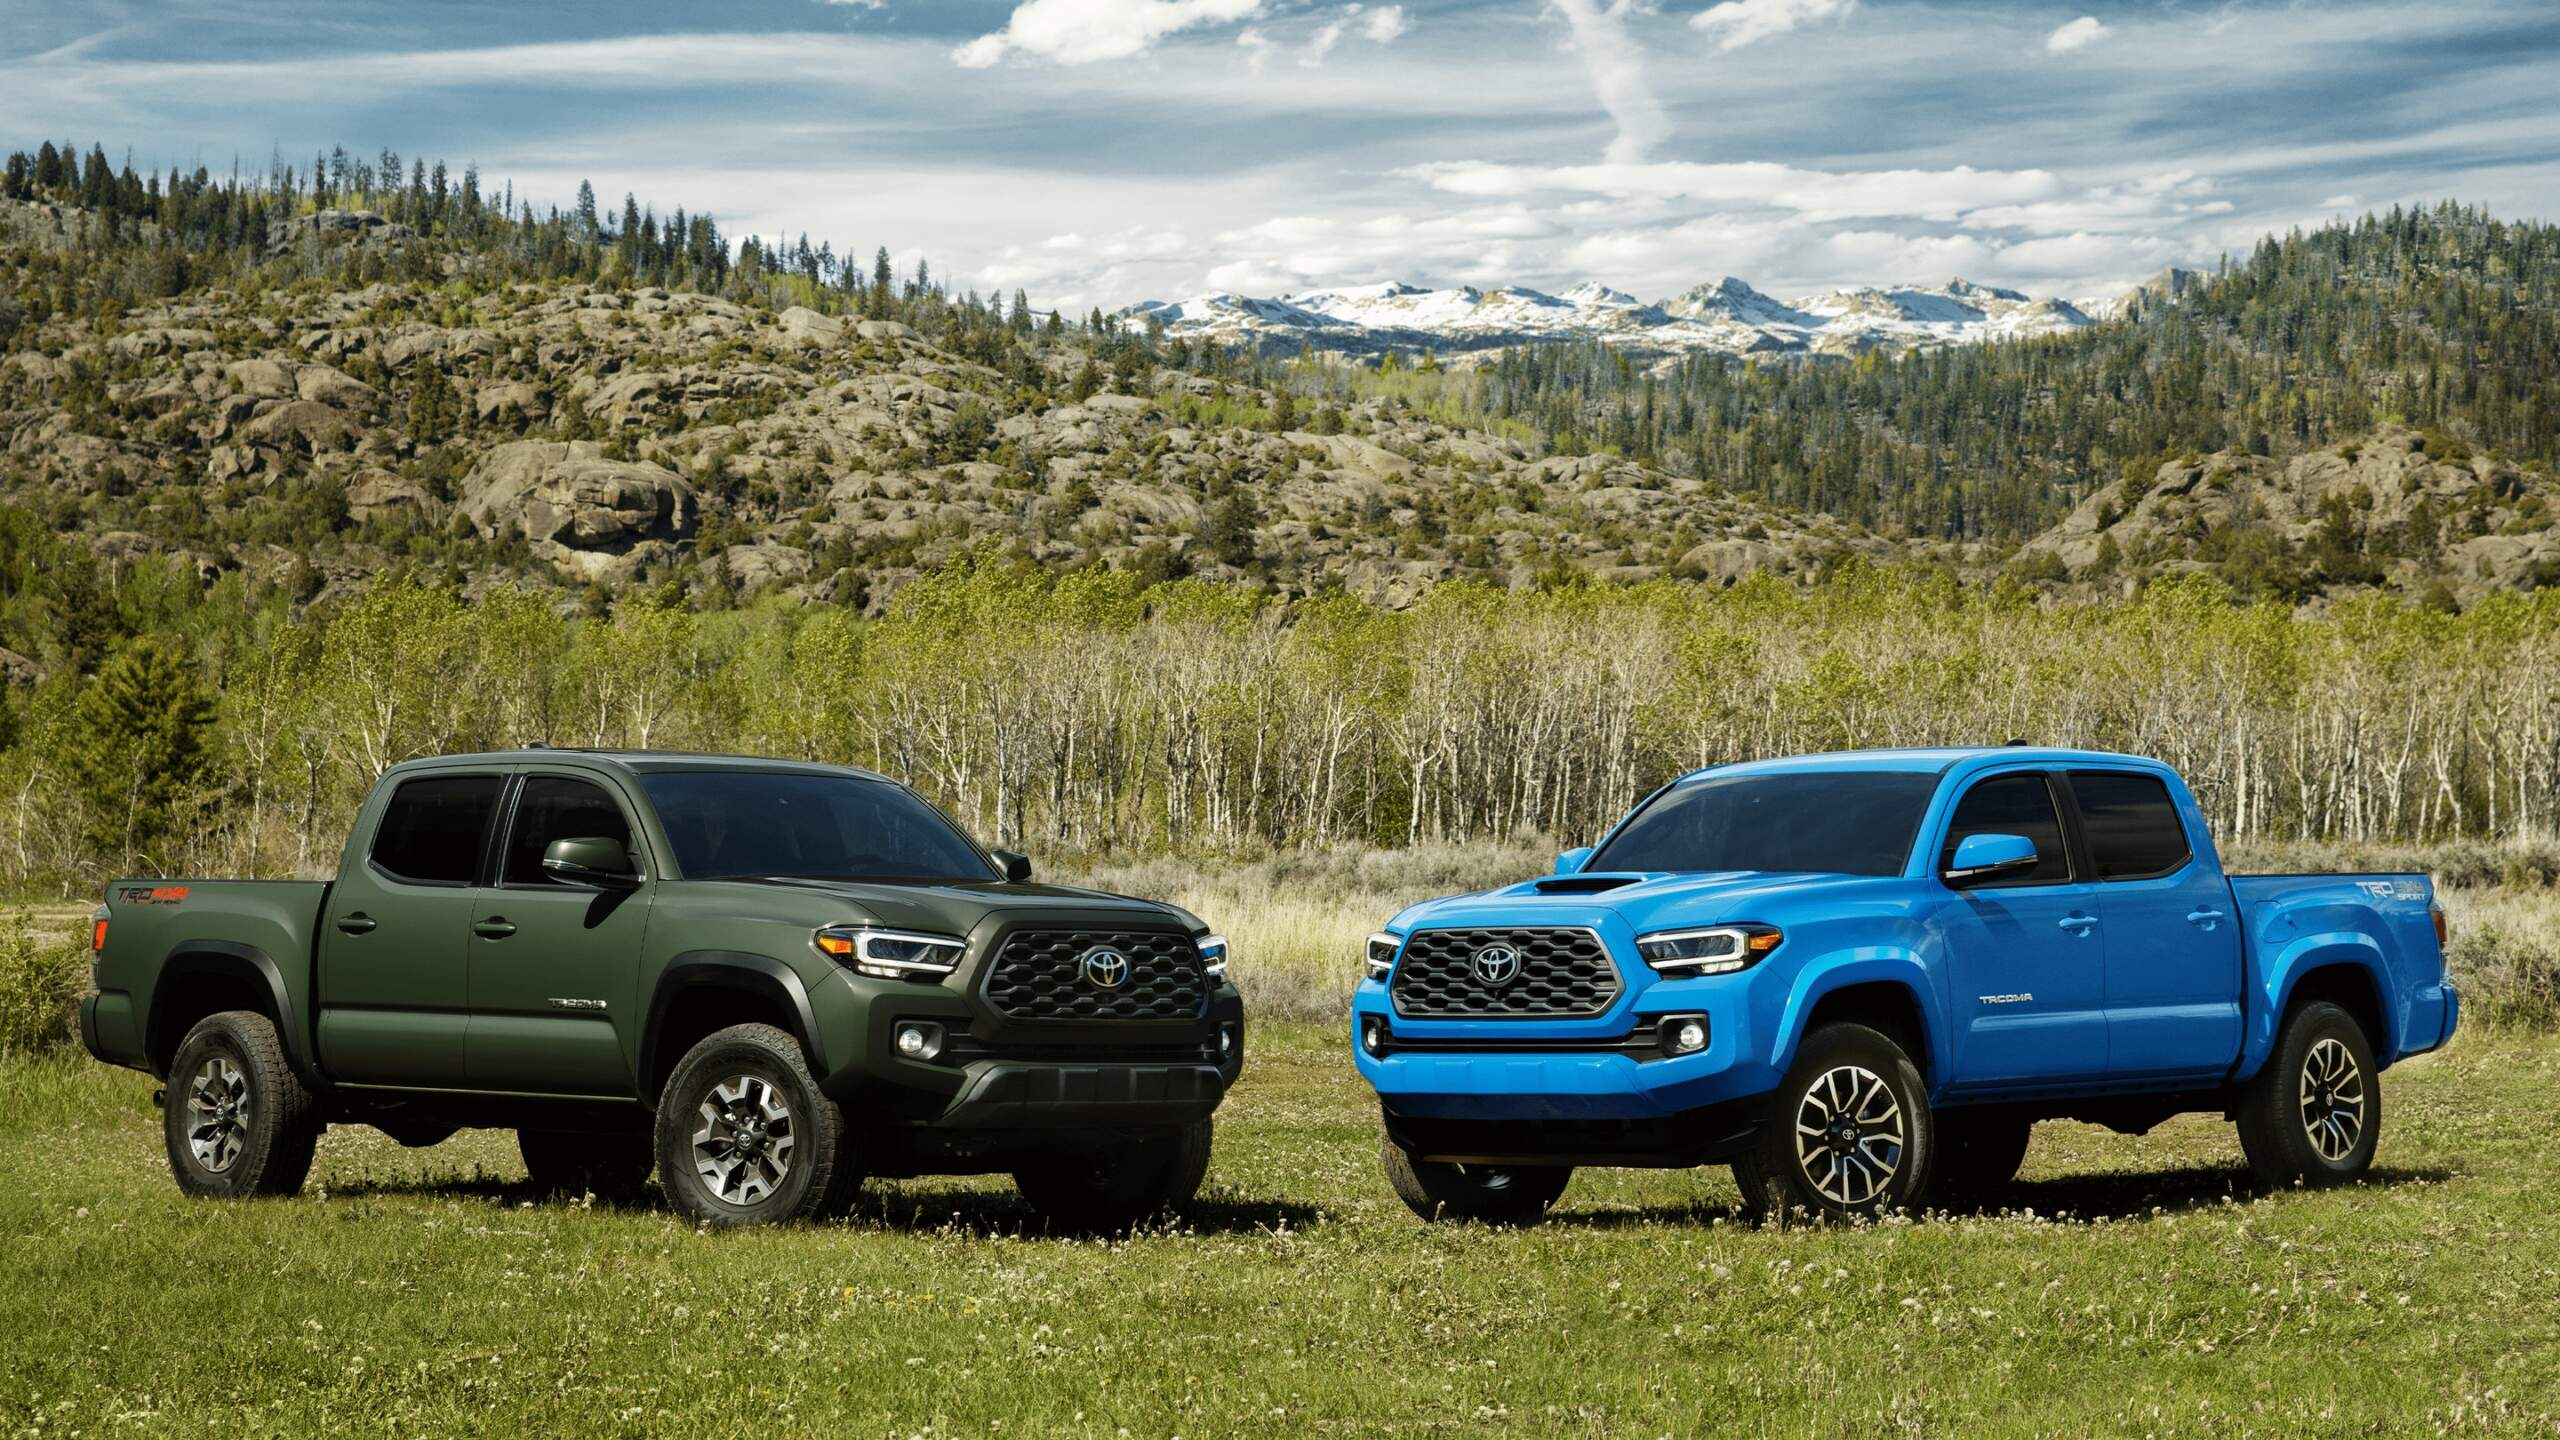 Inside the 2021 Toyota Tacoma: The Continuation of a Strong Legacy